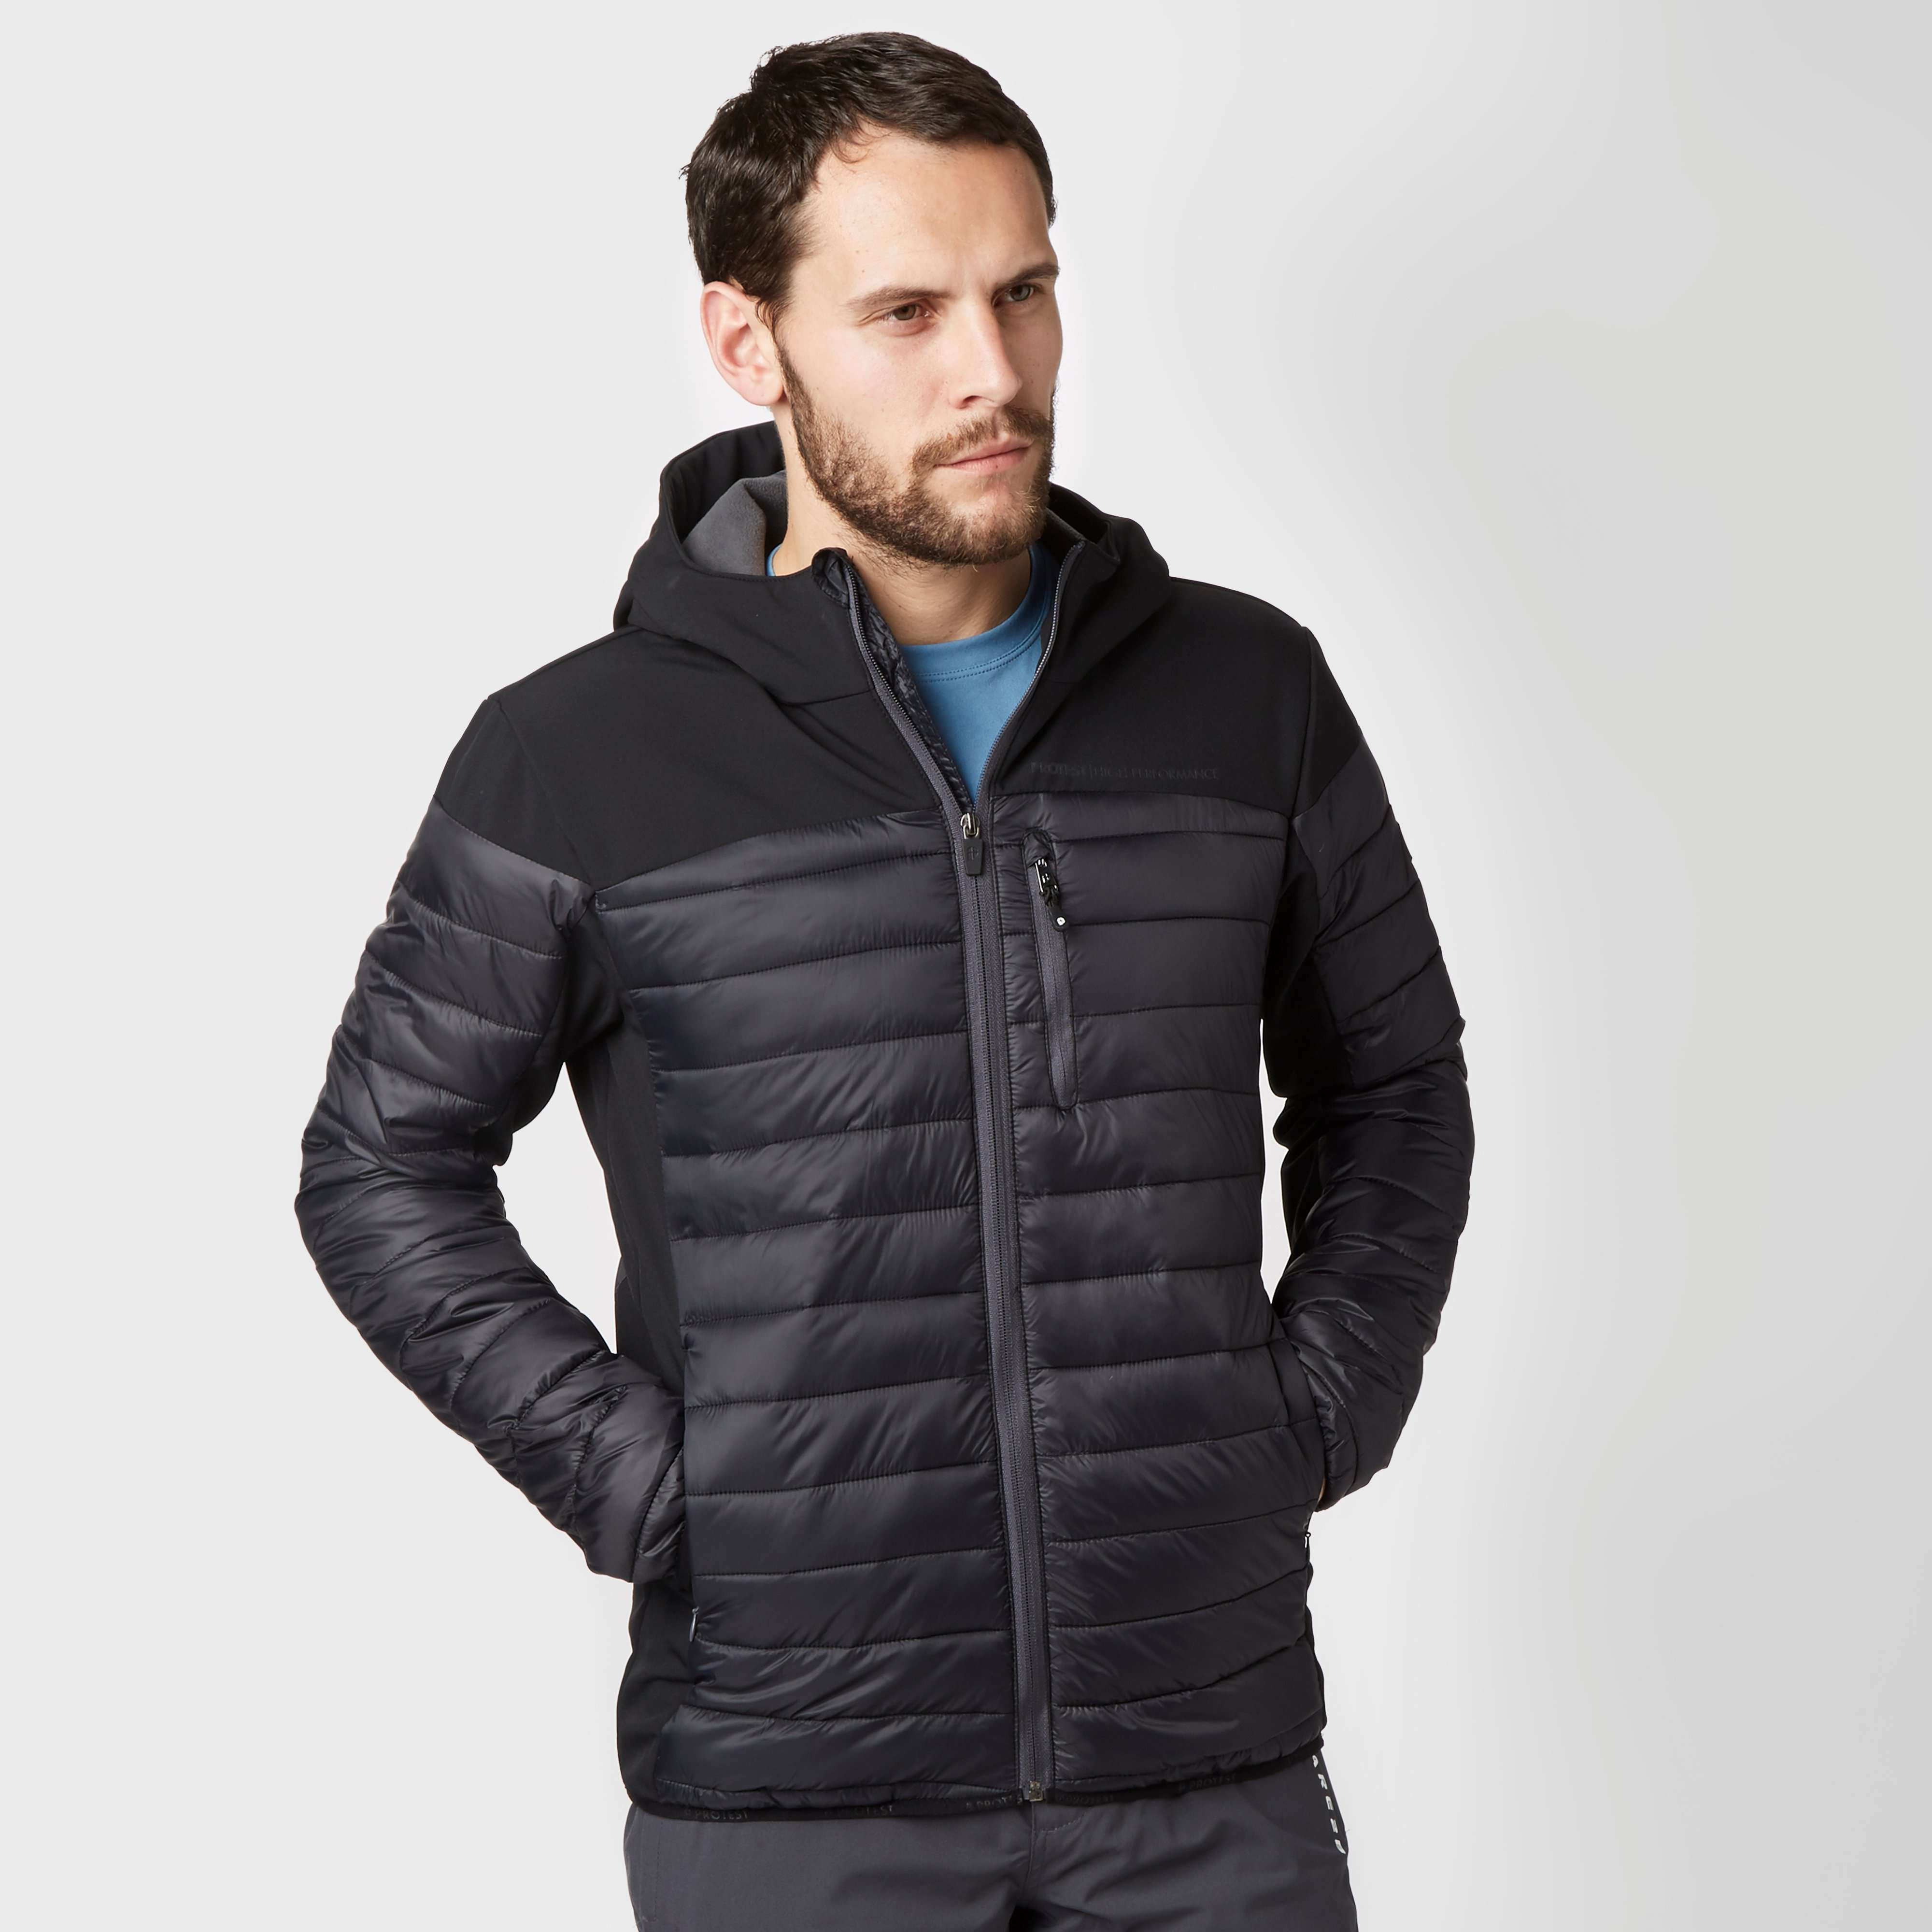 PROTEST Men's Update Hooded Insulated Jacket